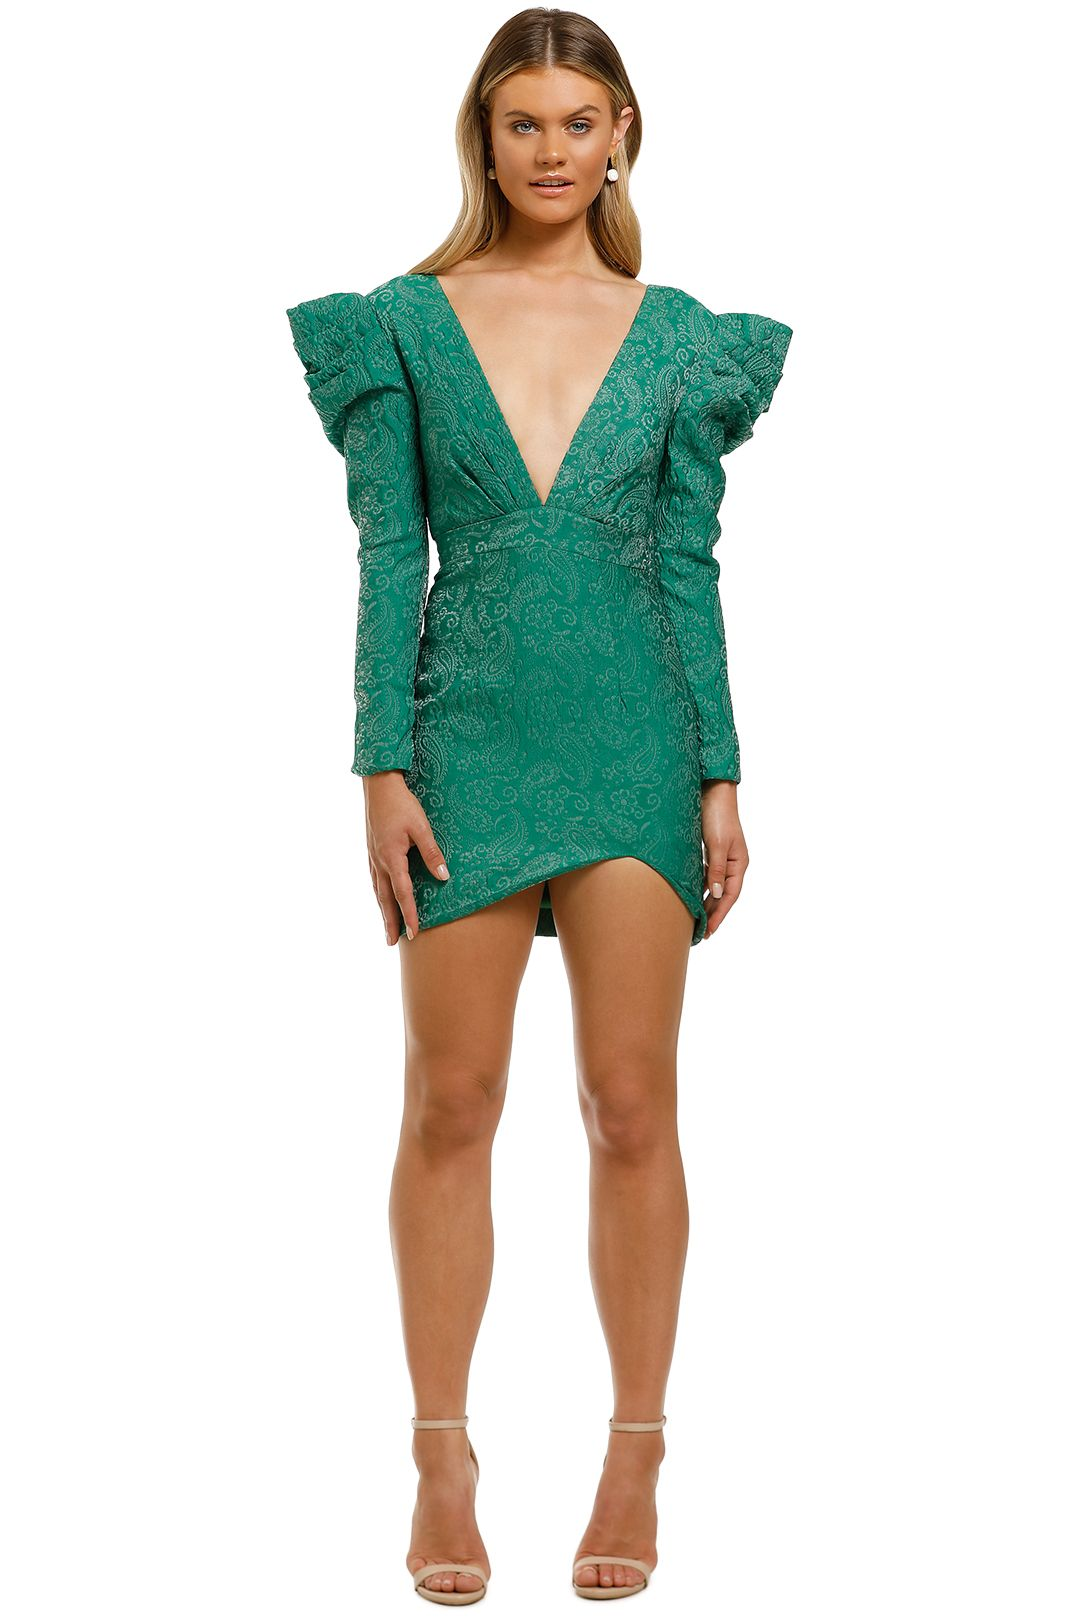 Nicola-Finetti-V-Neck-Puff-Sleeve-Mini-Dress-Emerald-Front